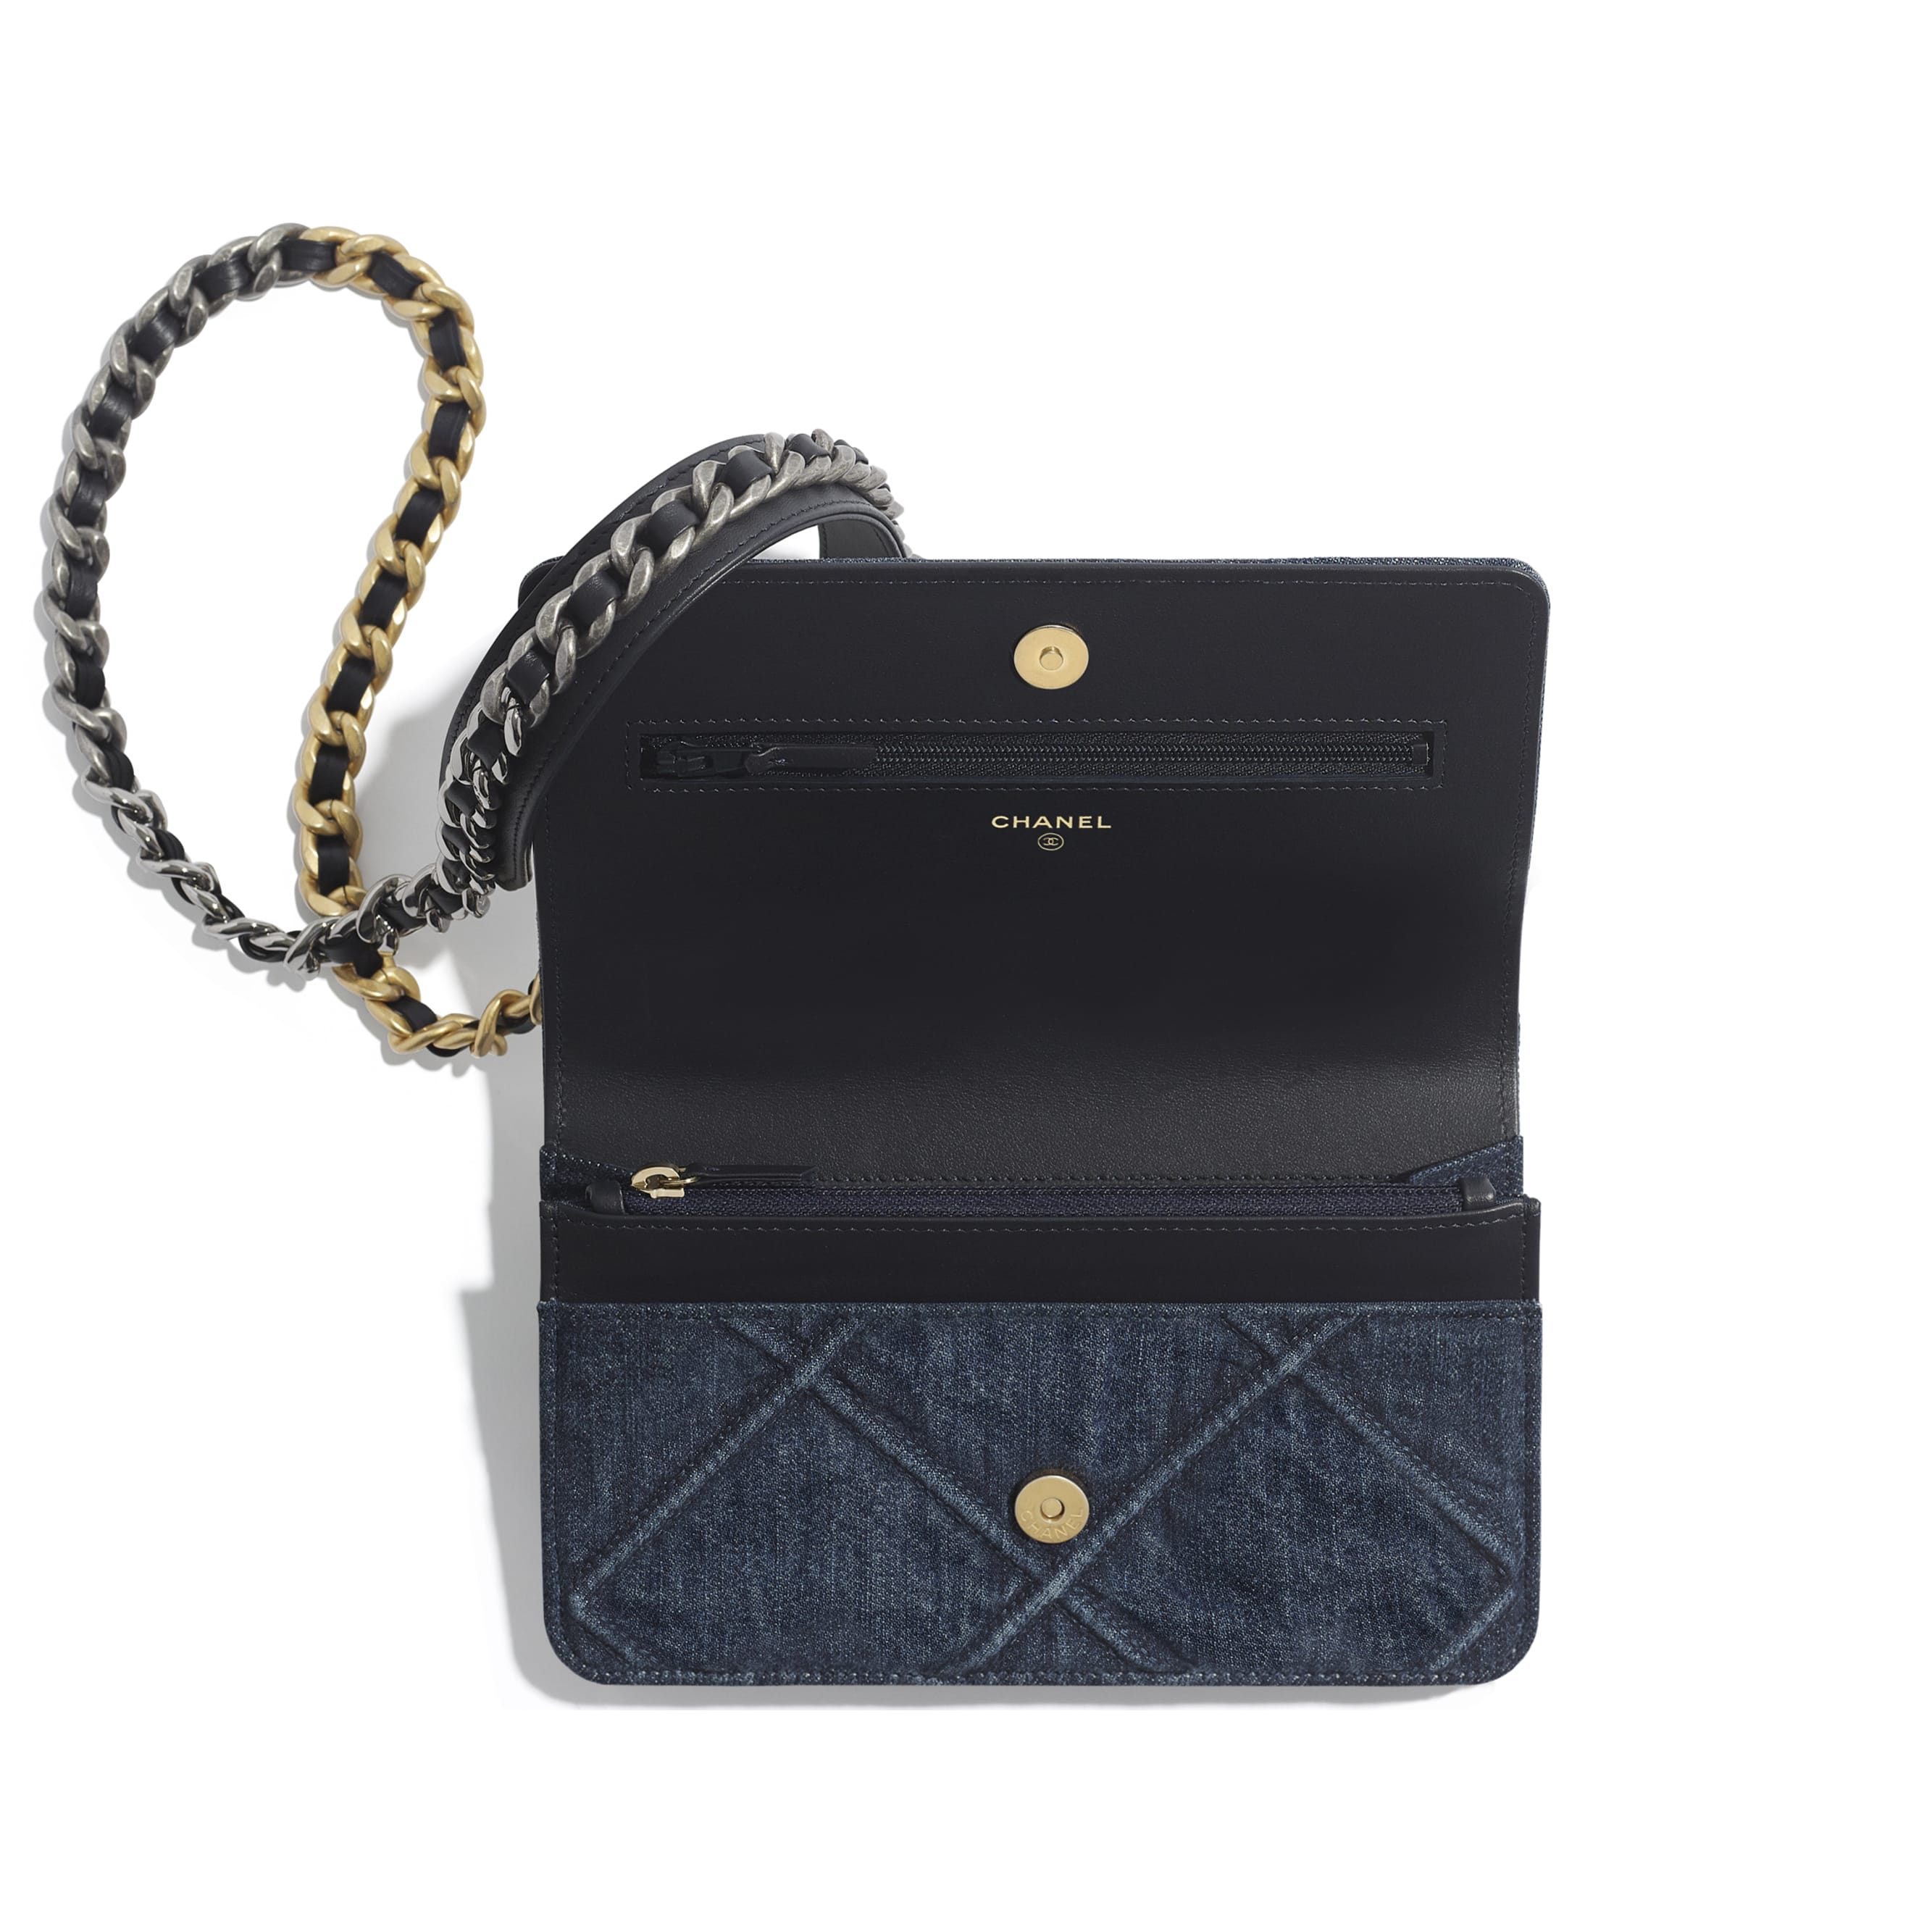 CHANEL 19 Wallet on Chain - Blue - Denim, Gold-Tone, Silver-Tone & Ruthenium-Finish Metal - CHANEL - Other view - see standard sized version